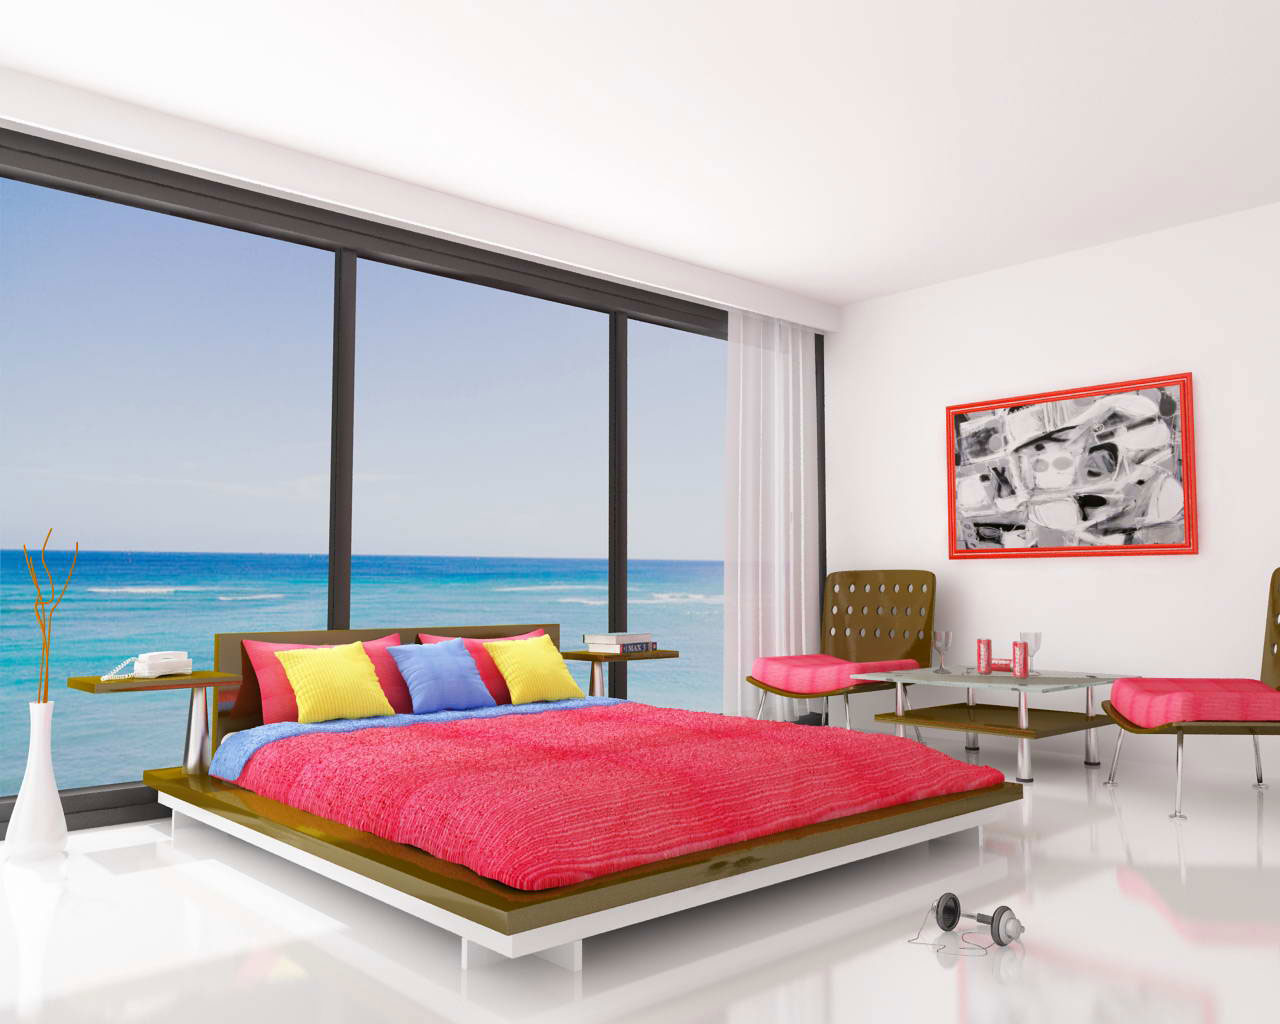 Tag: Colorful Bedroom Designs